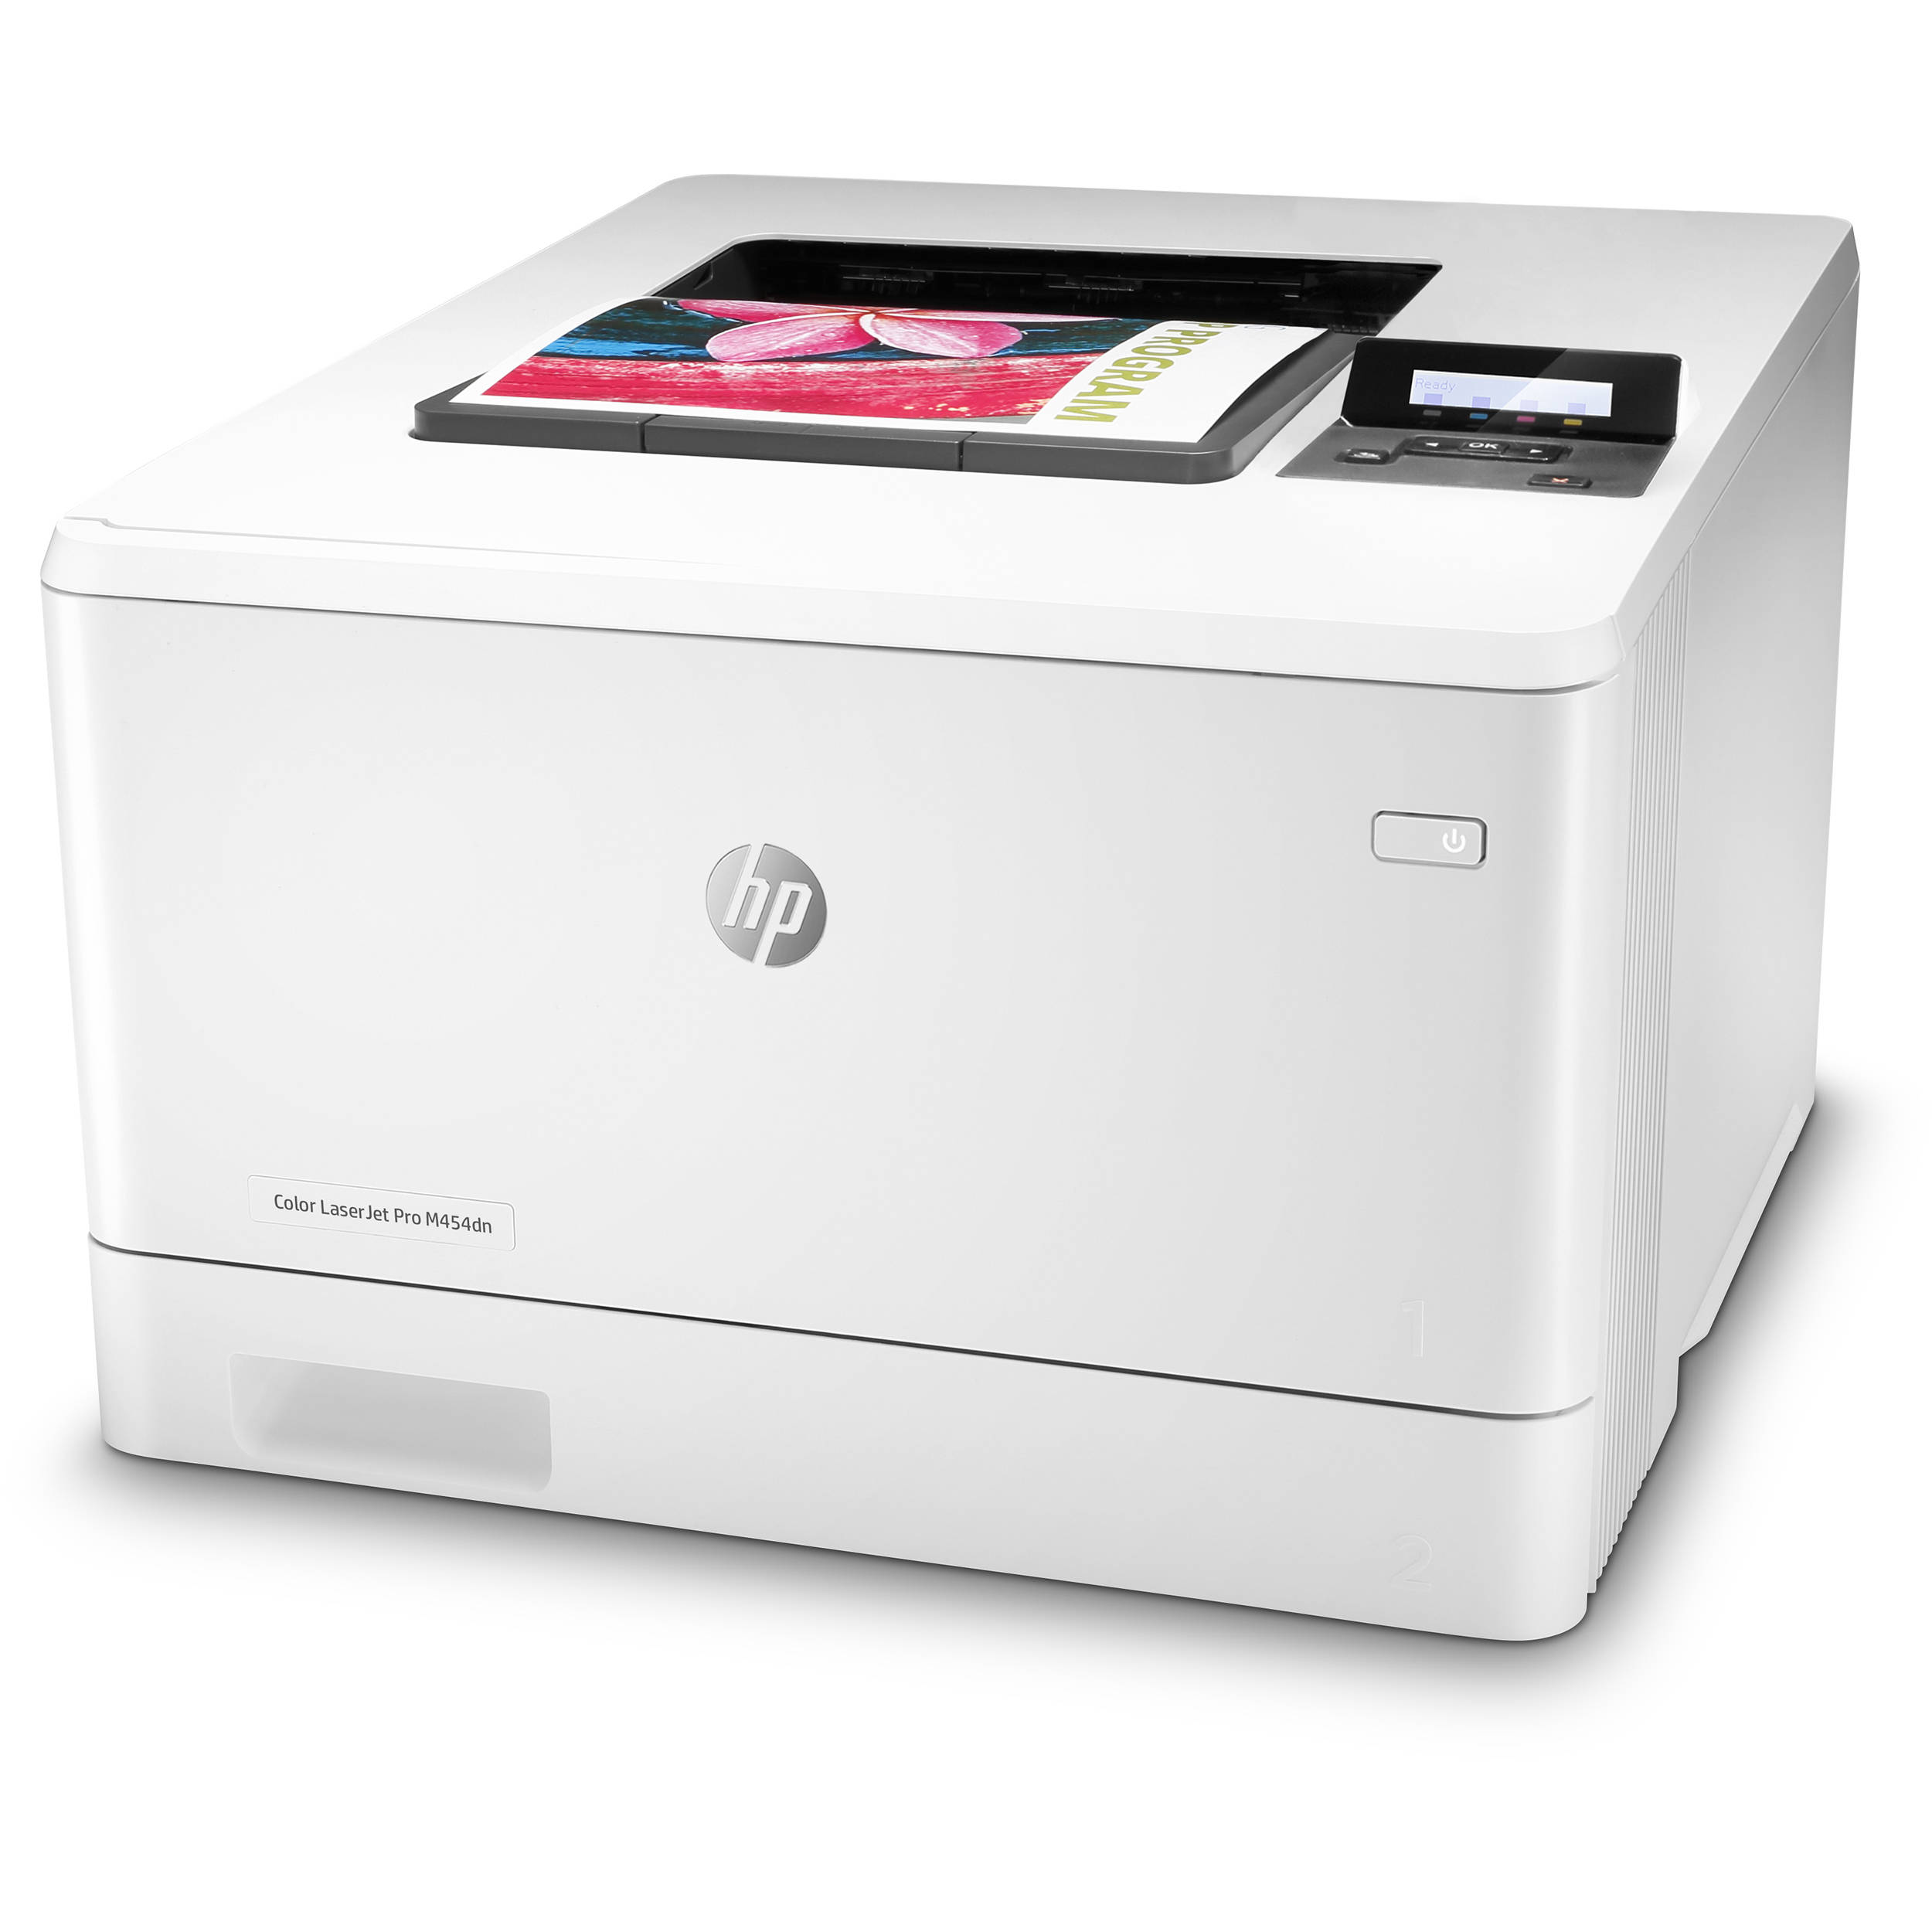 HP Color LaserJet Pro M454dn W1Y44A#BGJ B&H Photo Video